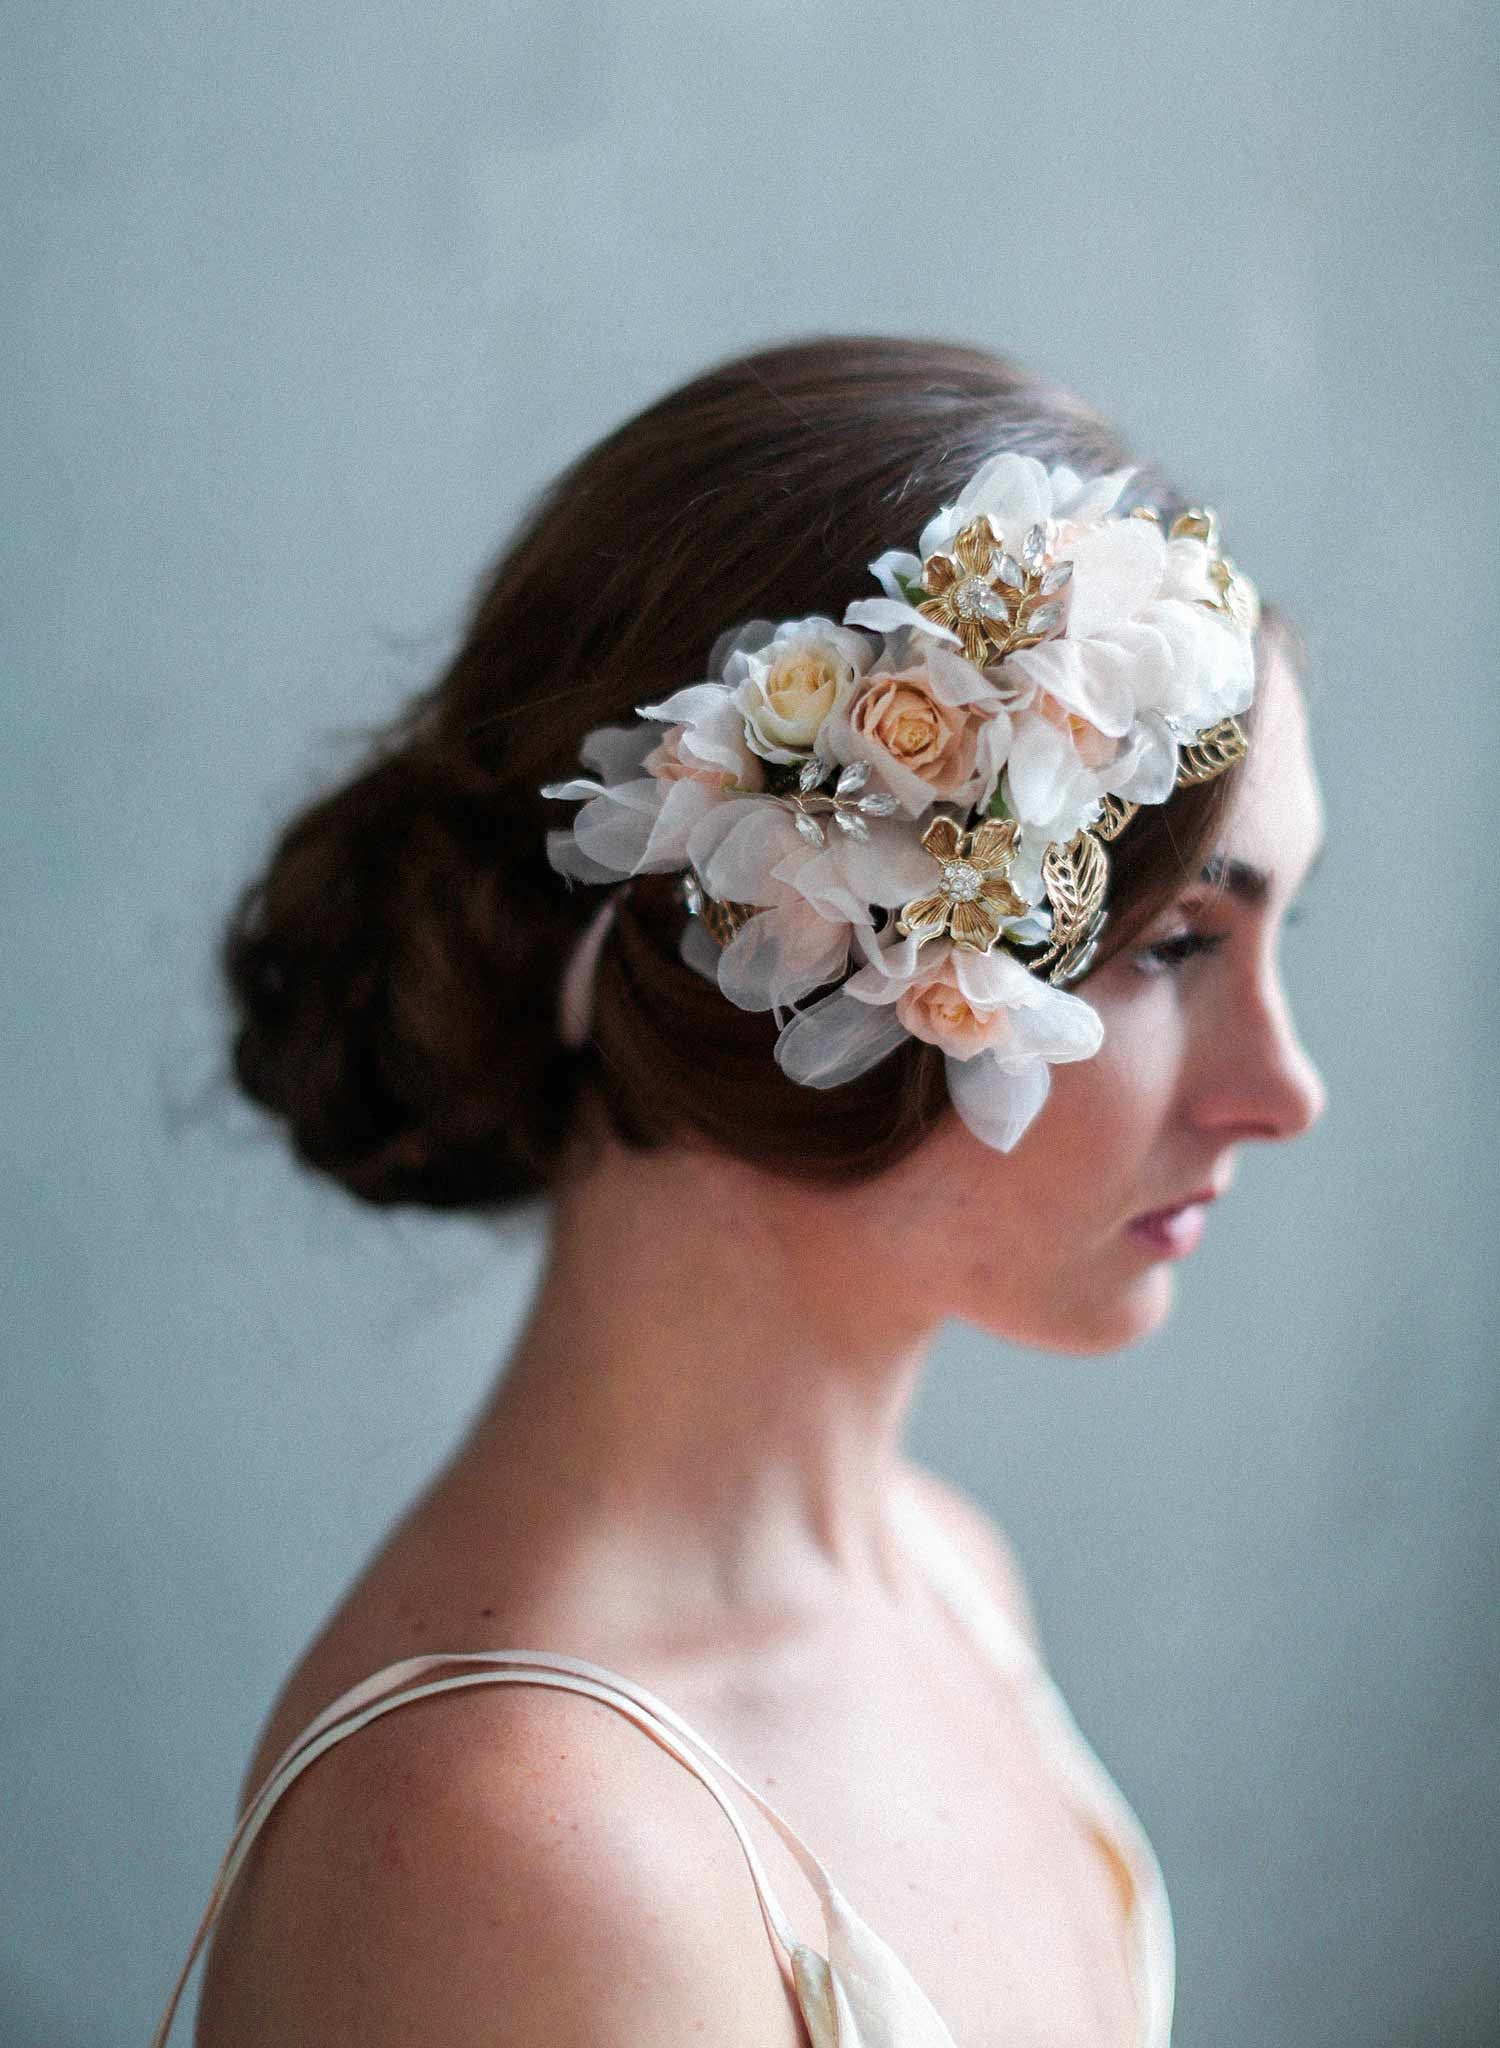 Blush and gold bouquet headpiece - Style #722